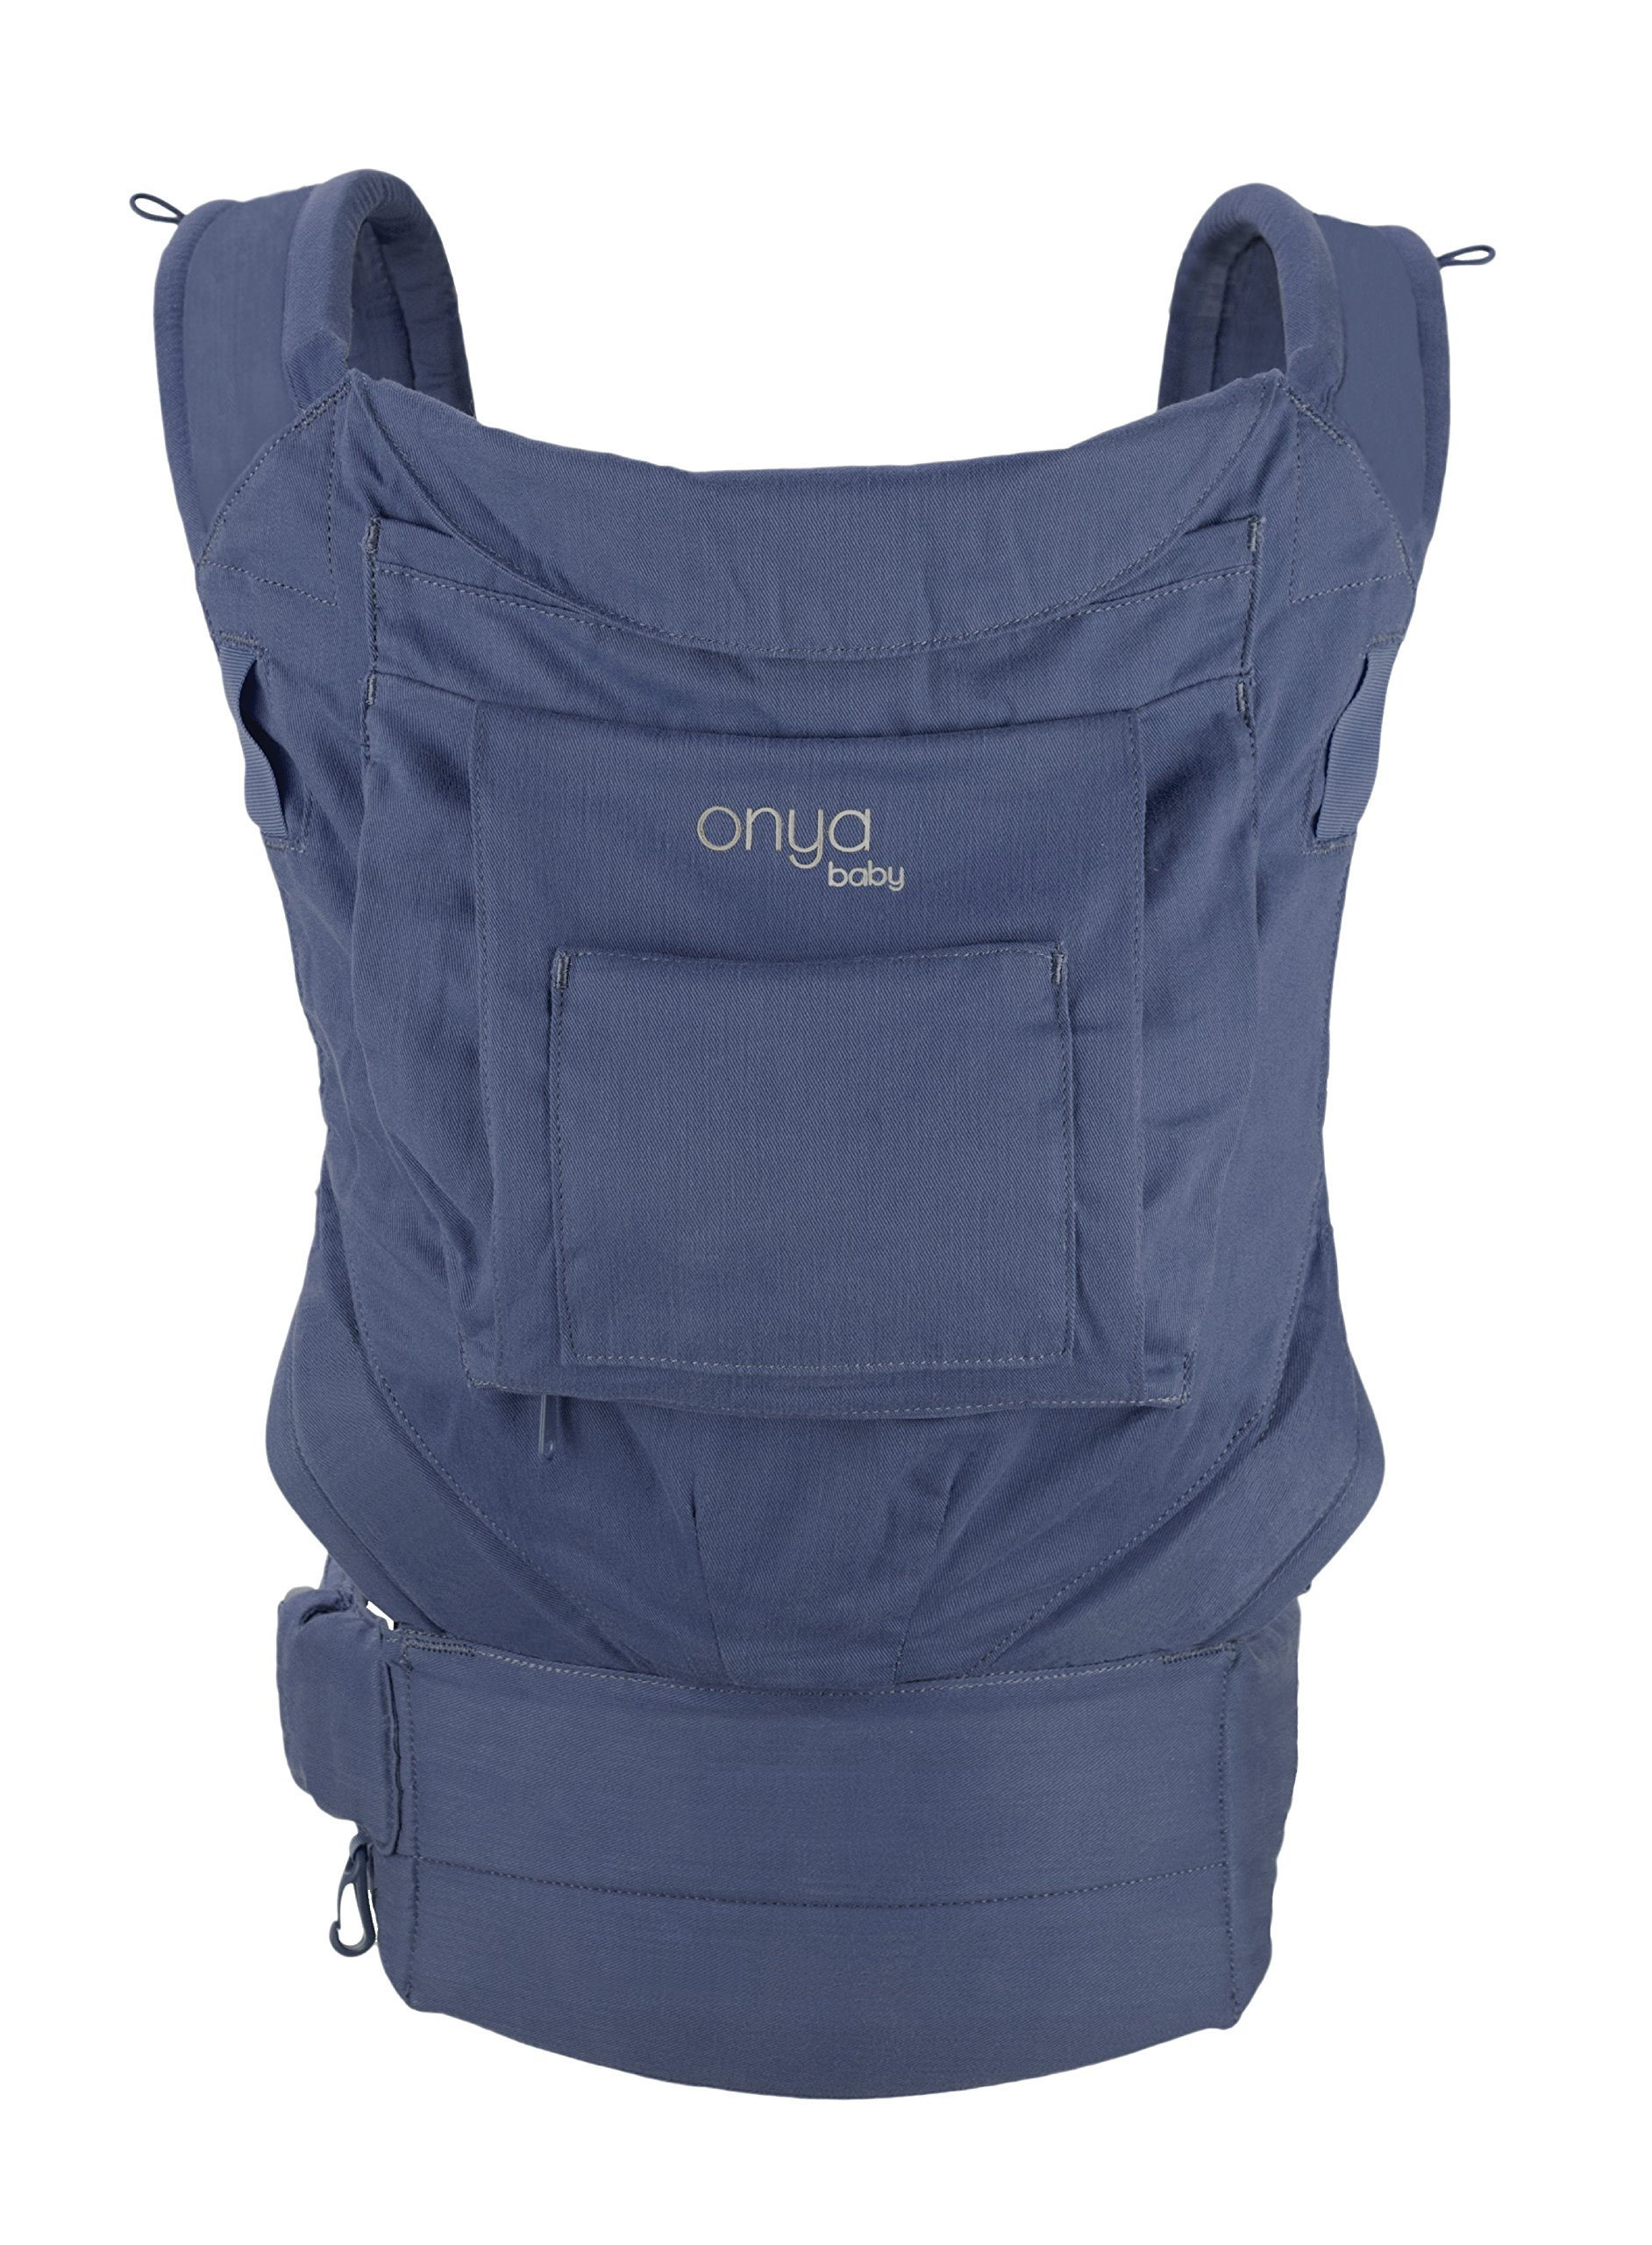 Onya Baby Cruiser Ergonomic Front and Back Infant to Toddler Carrier - Midnight Blue